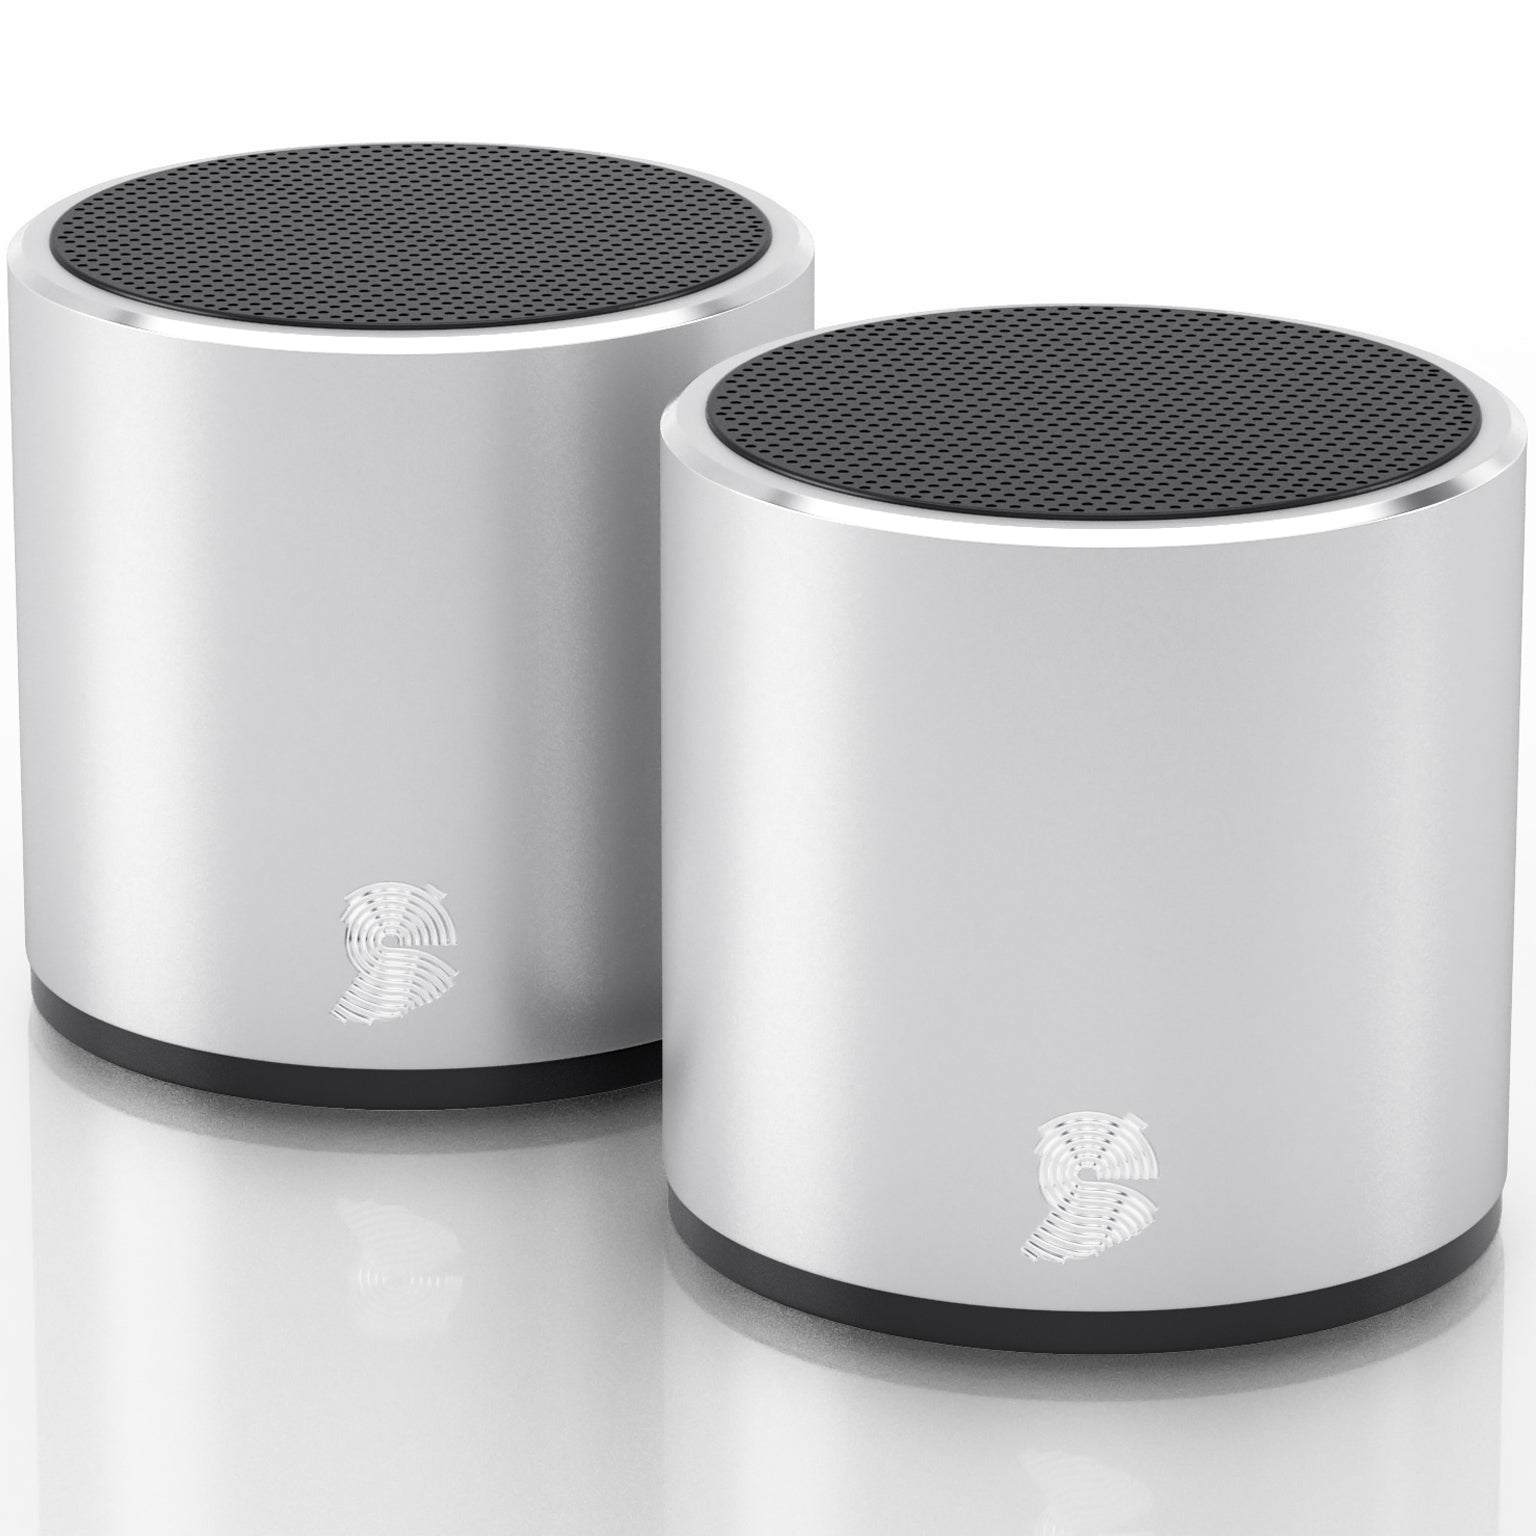 HeadSound H2 Bluetooth Wireless Dual Speakers with Built In Mic for HandsFree Phone Calls